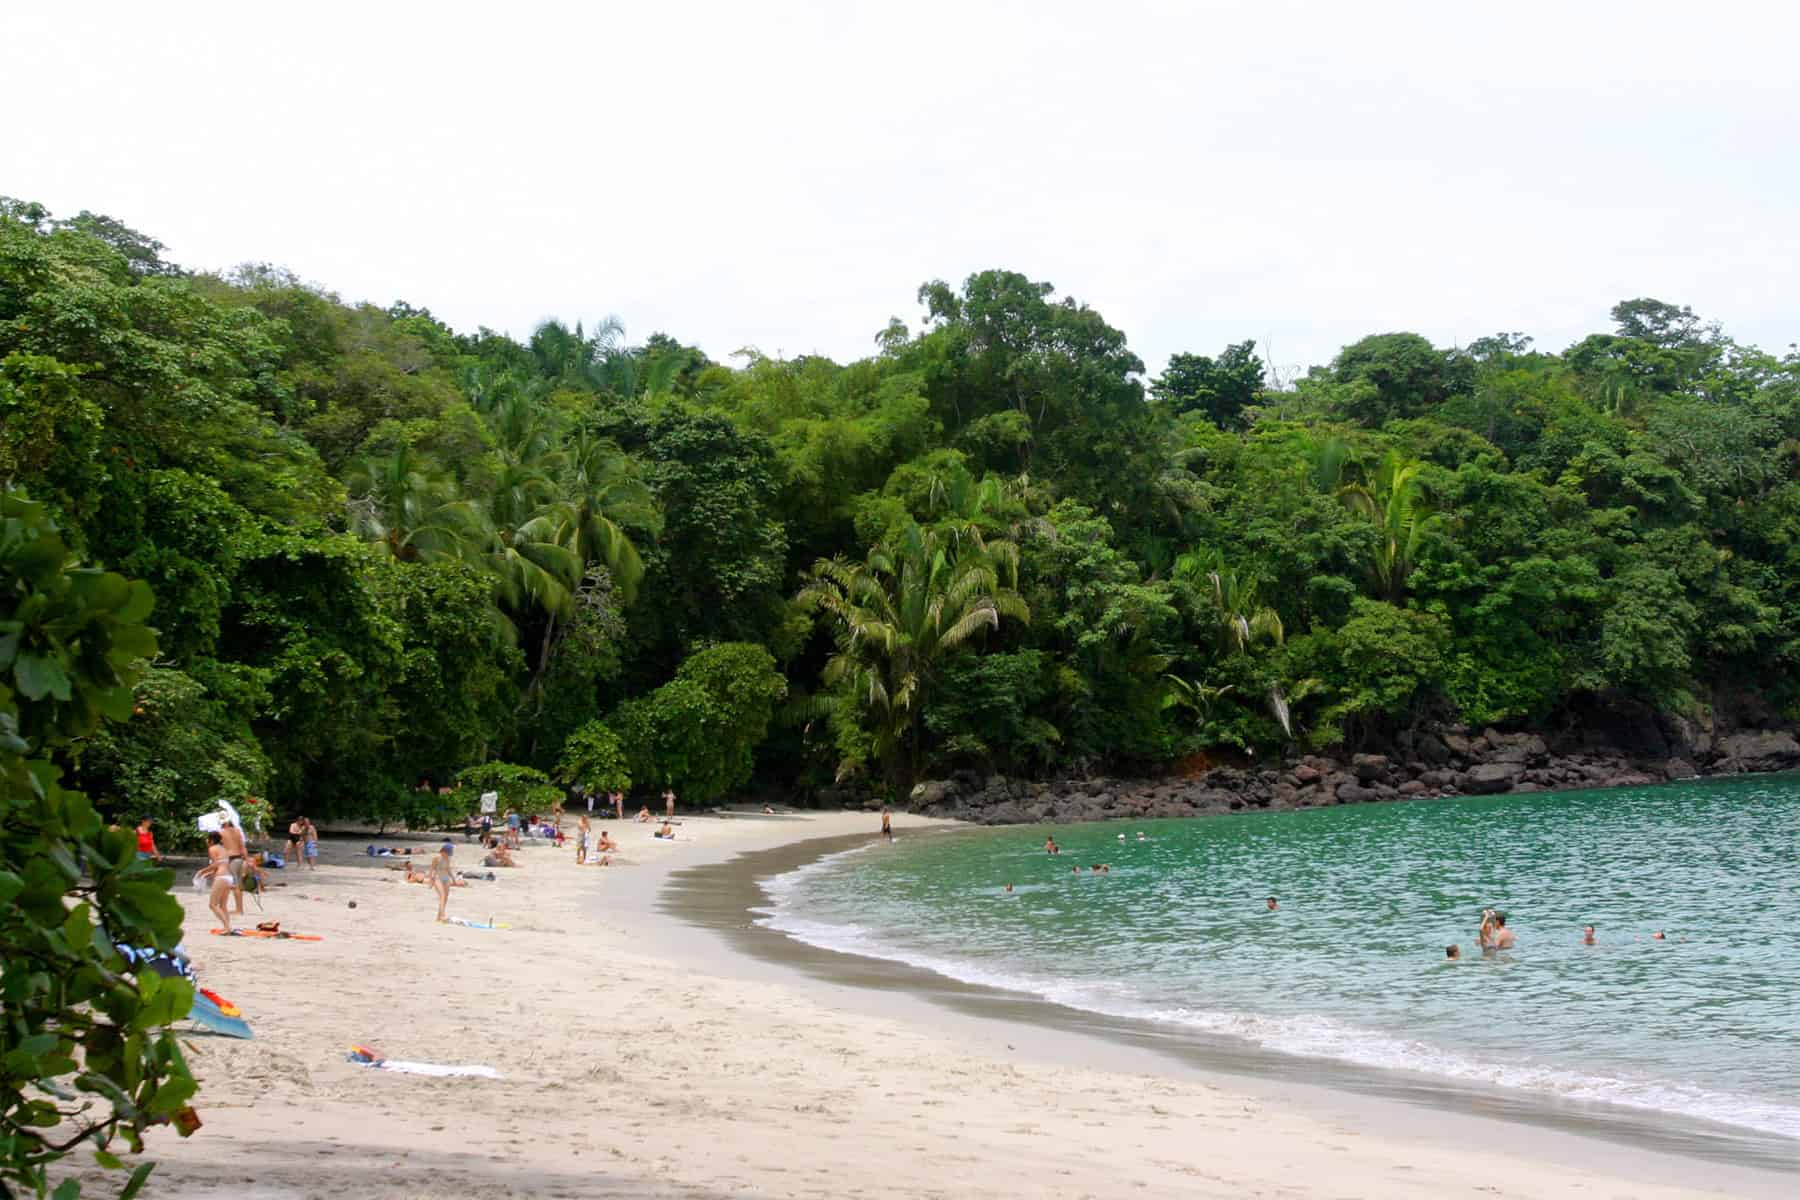 Manuel Antonio beach, Costa Rica